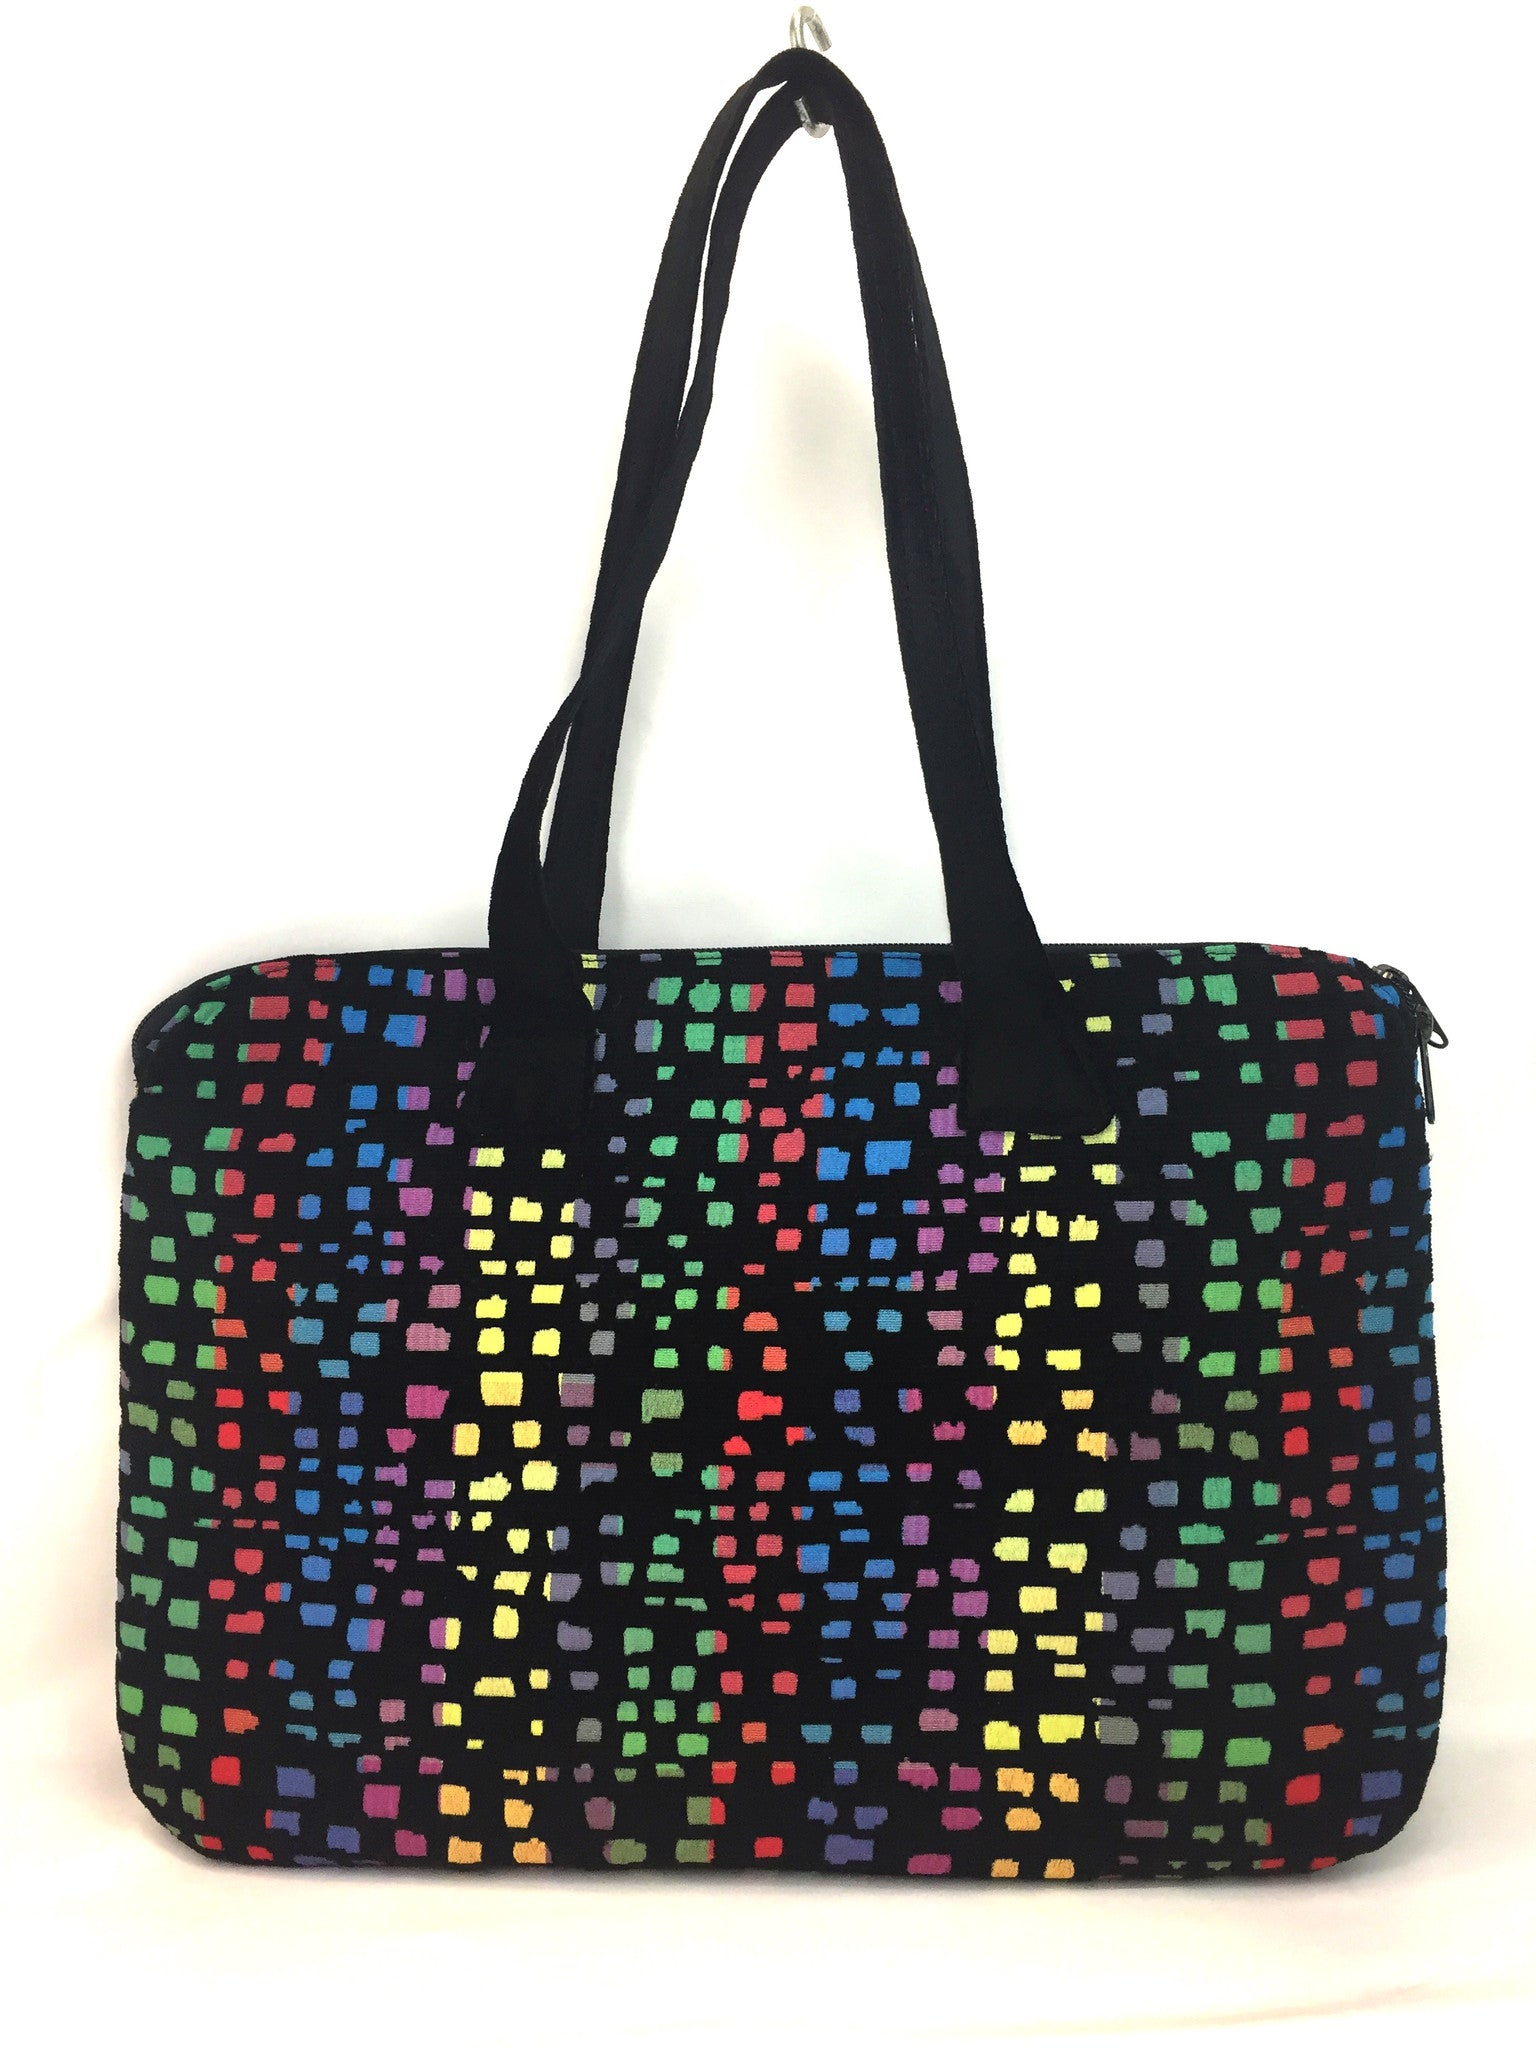 Custom Made East West Tote